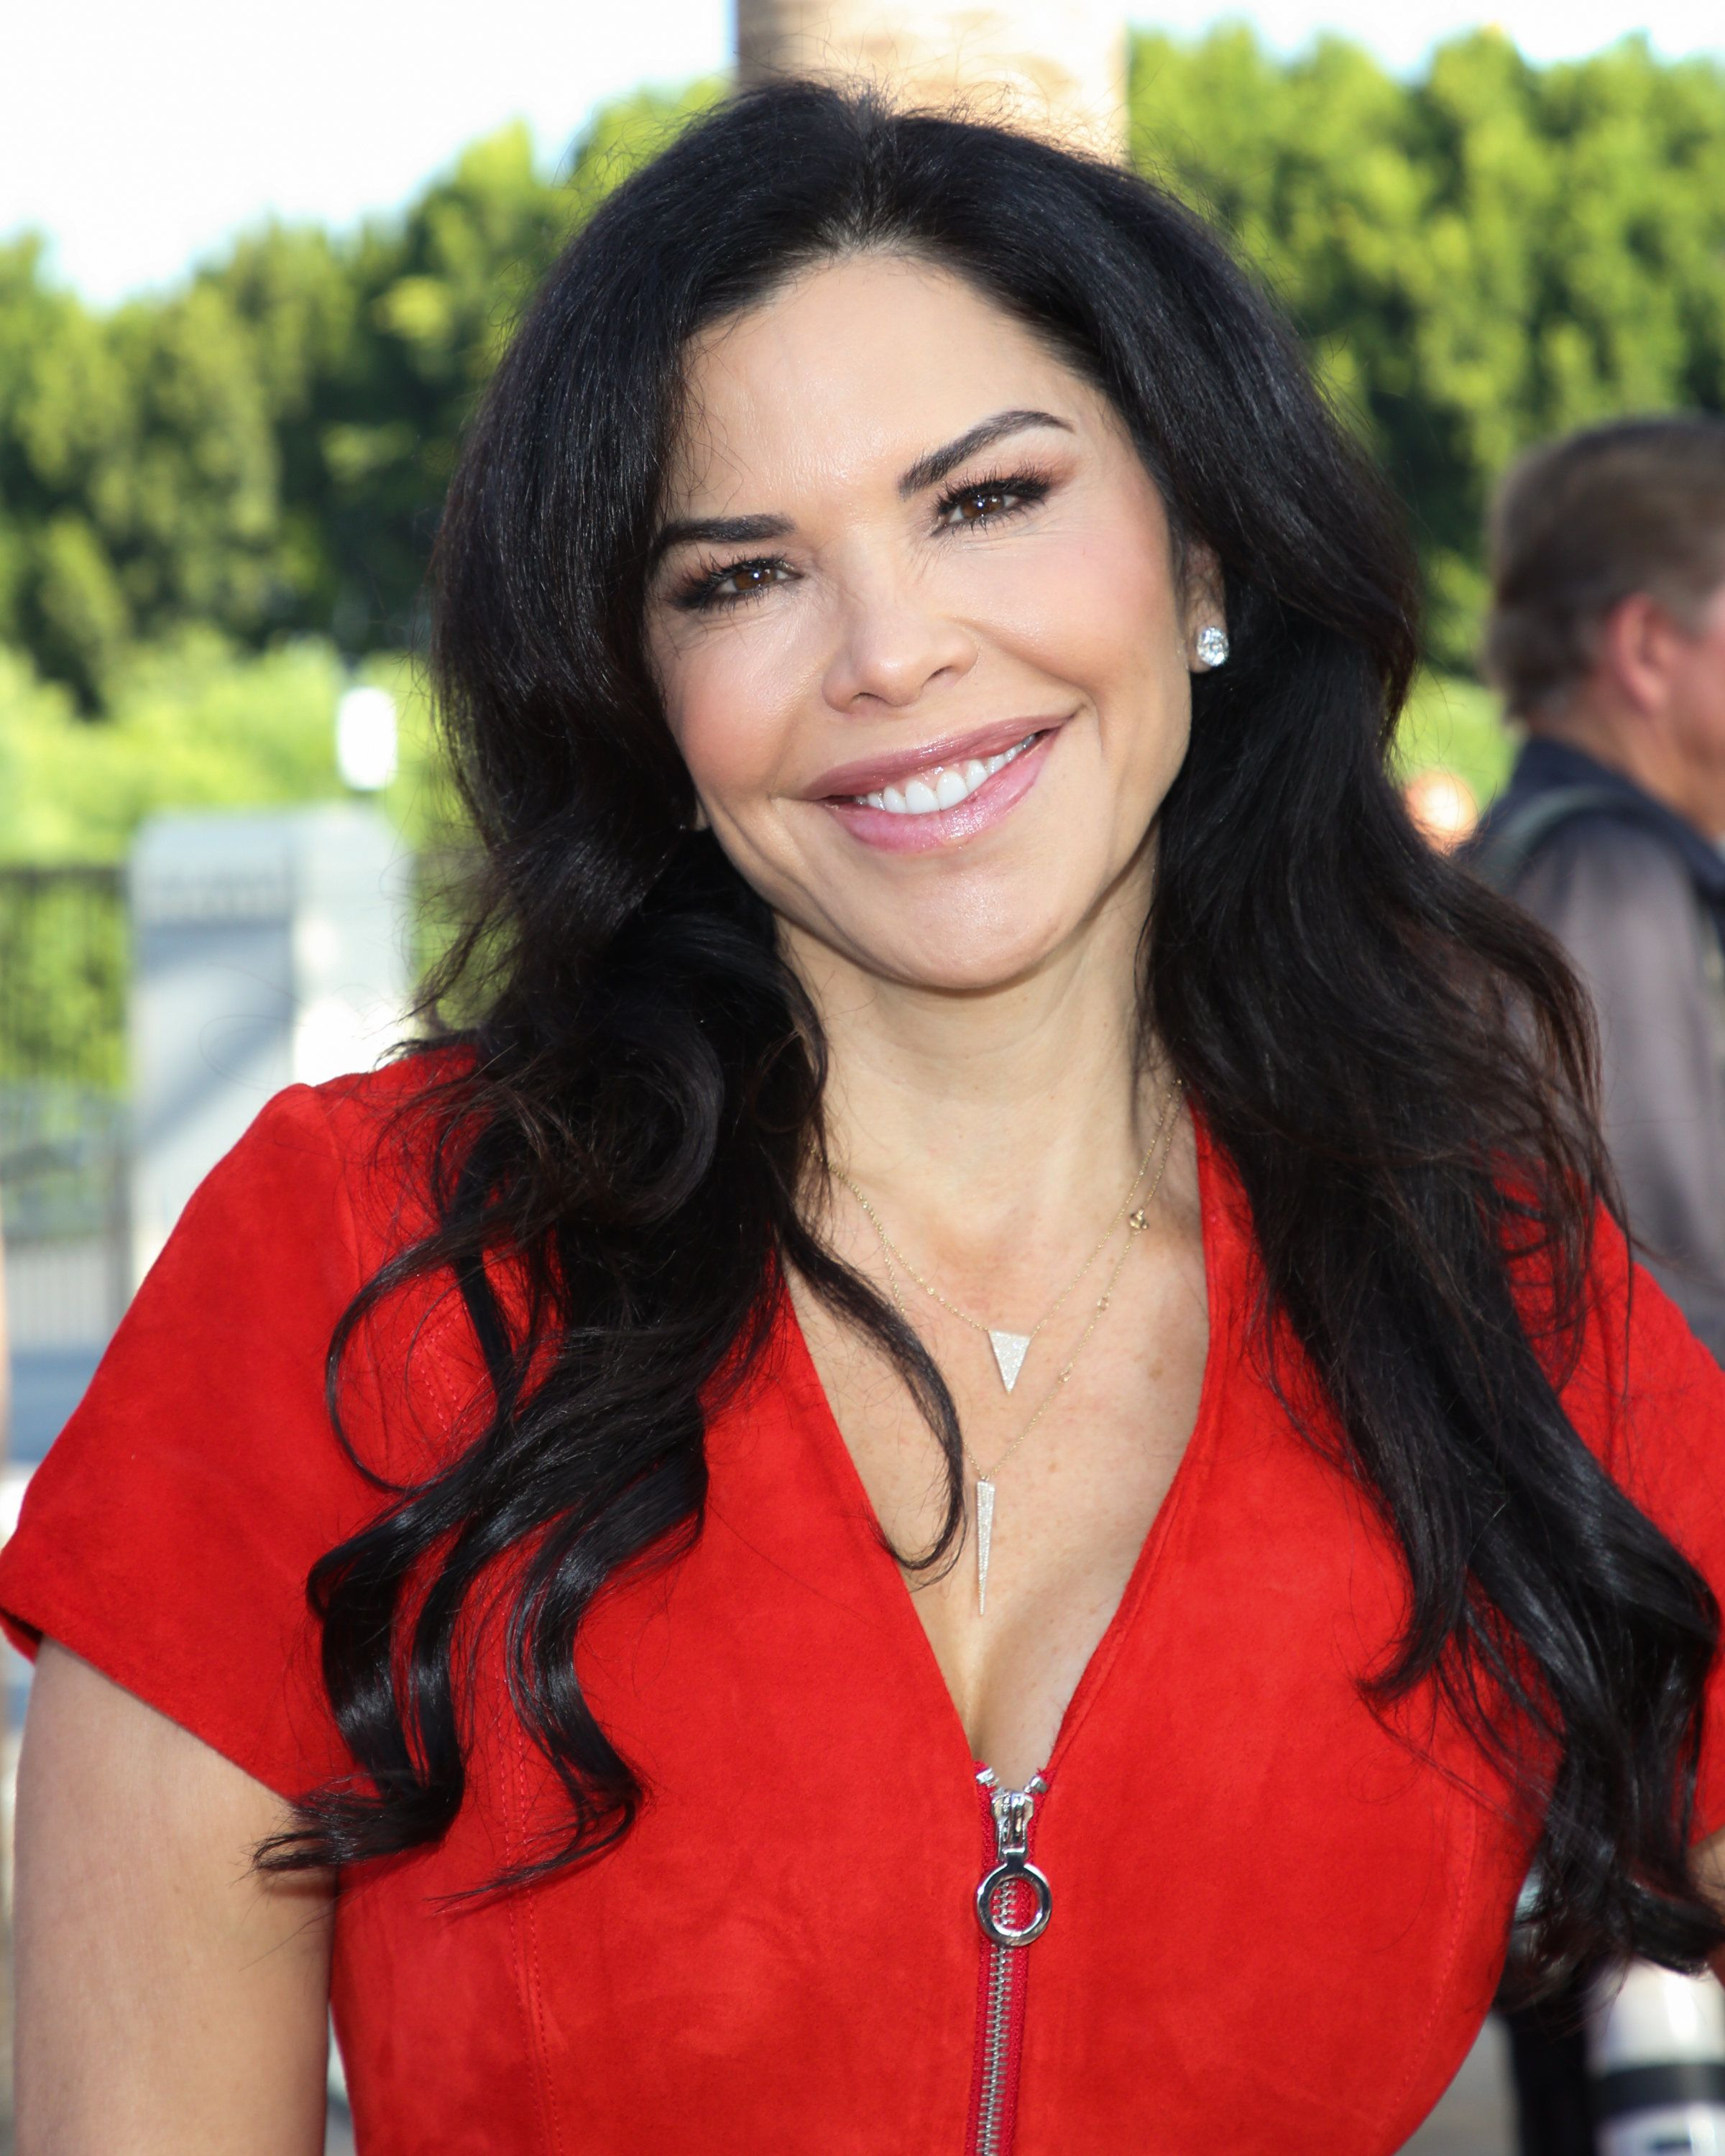 UNIVERSAL CITY, CA - SEPTEMBER 10:  TV Personality Lauren Sanchez attends the 25th anniversary celebration of 'Extra' at Universal Studios Hollywood on September 10, 2018 in Universal City, California.  (Photo by Paul Archuleta/Getty Images)